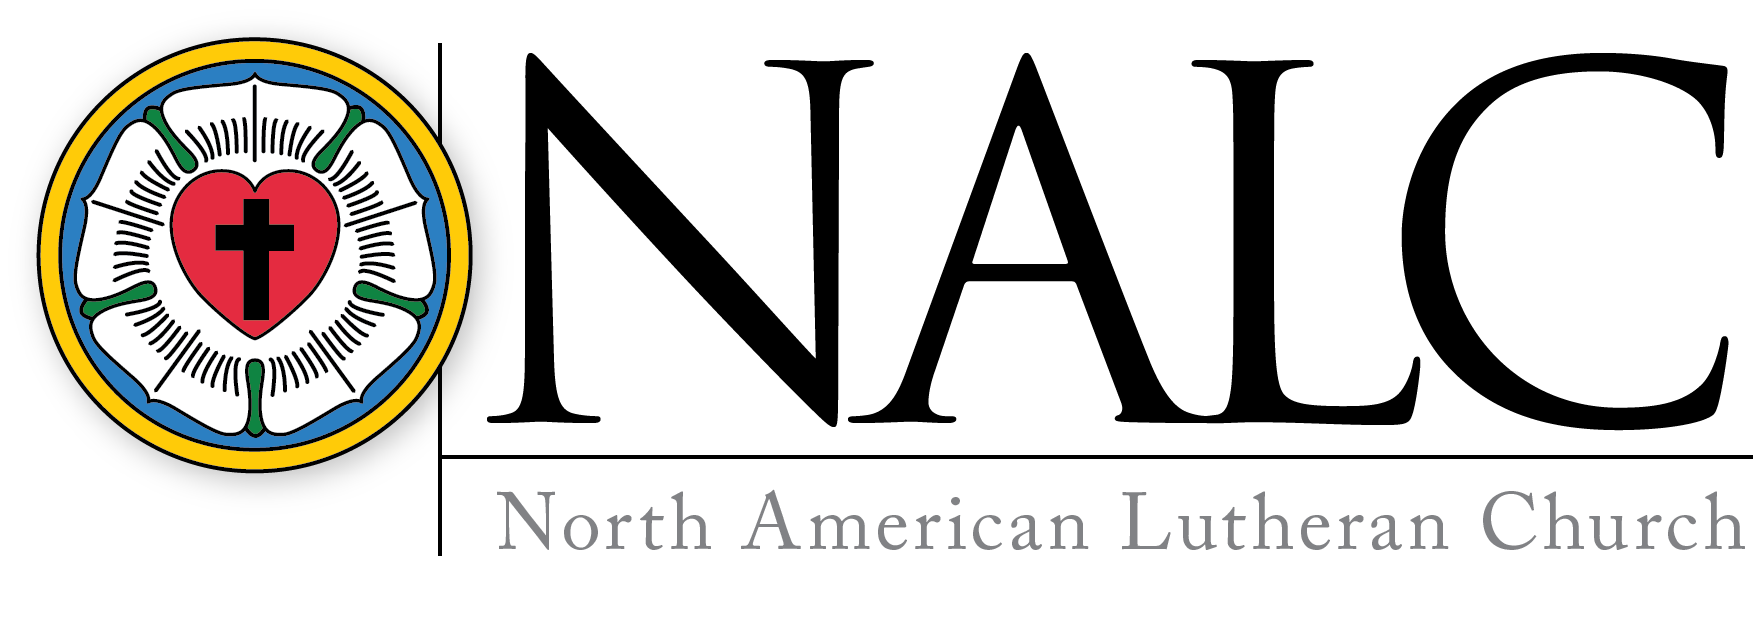 Confession of Faith - North American Lutheran Church